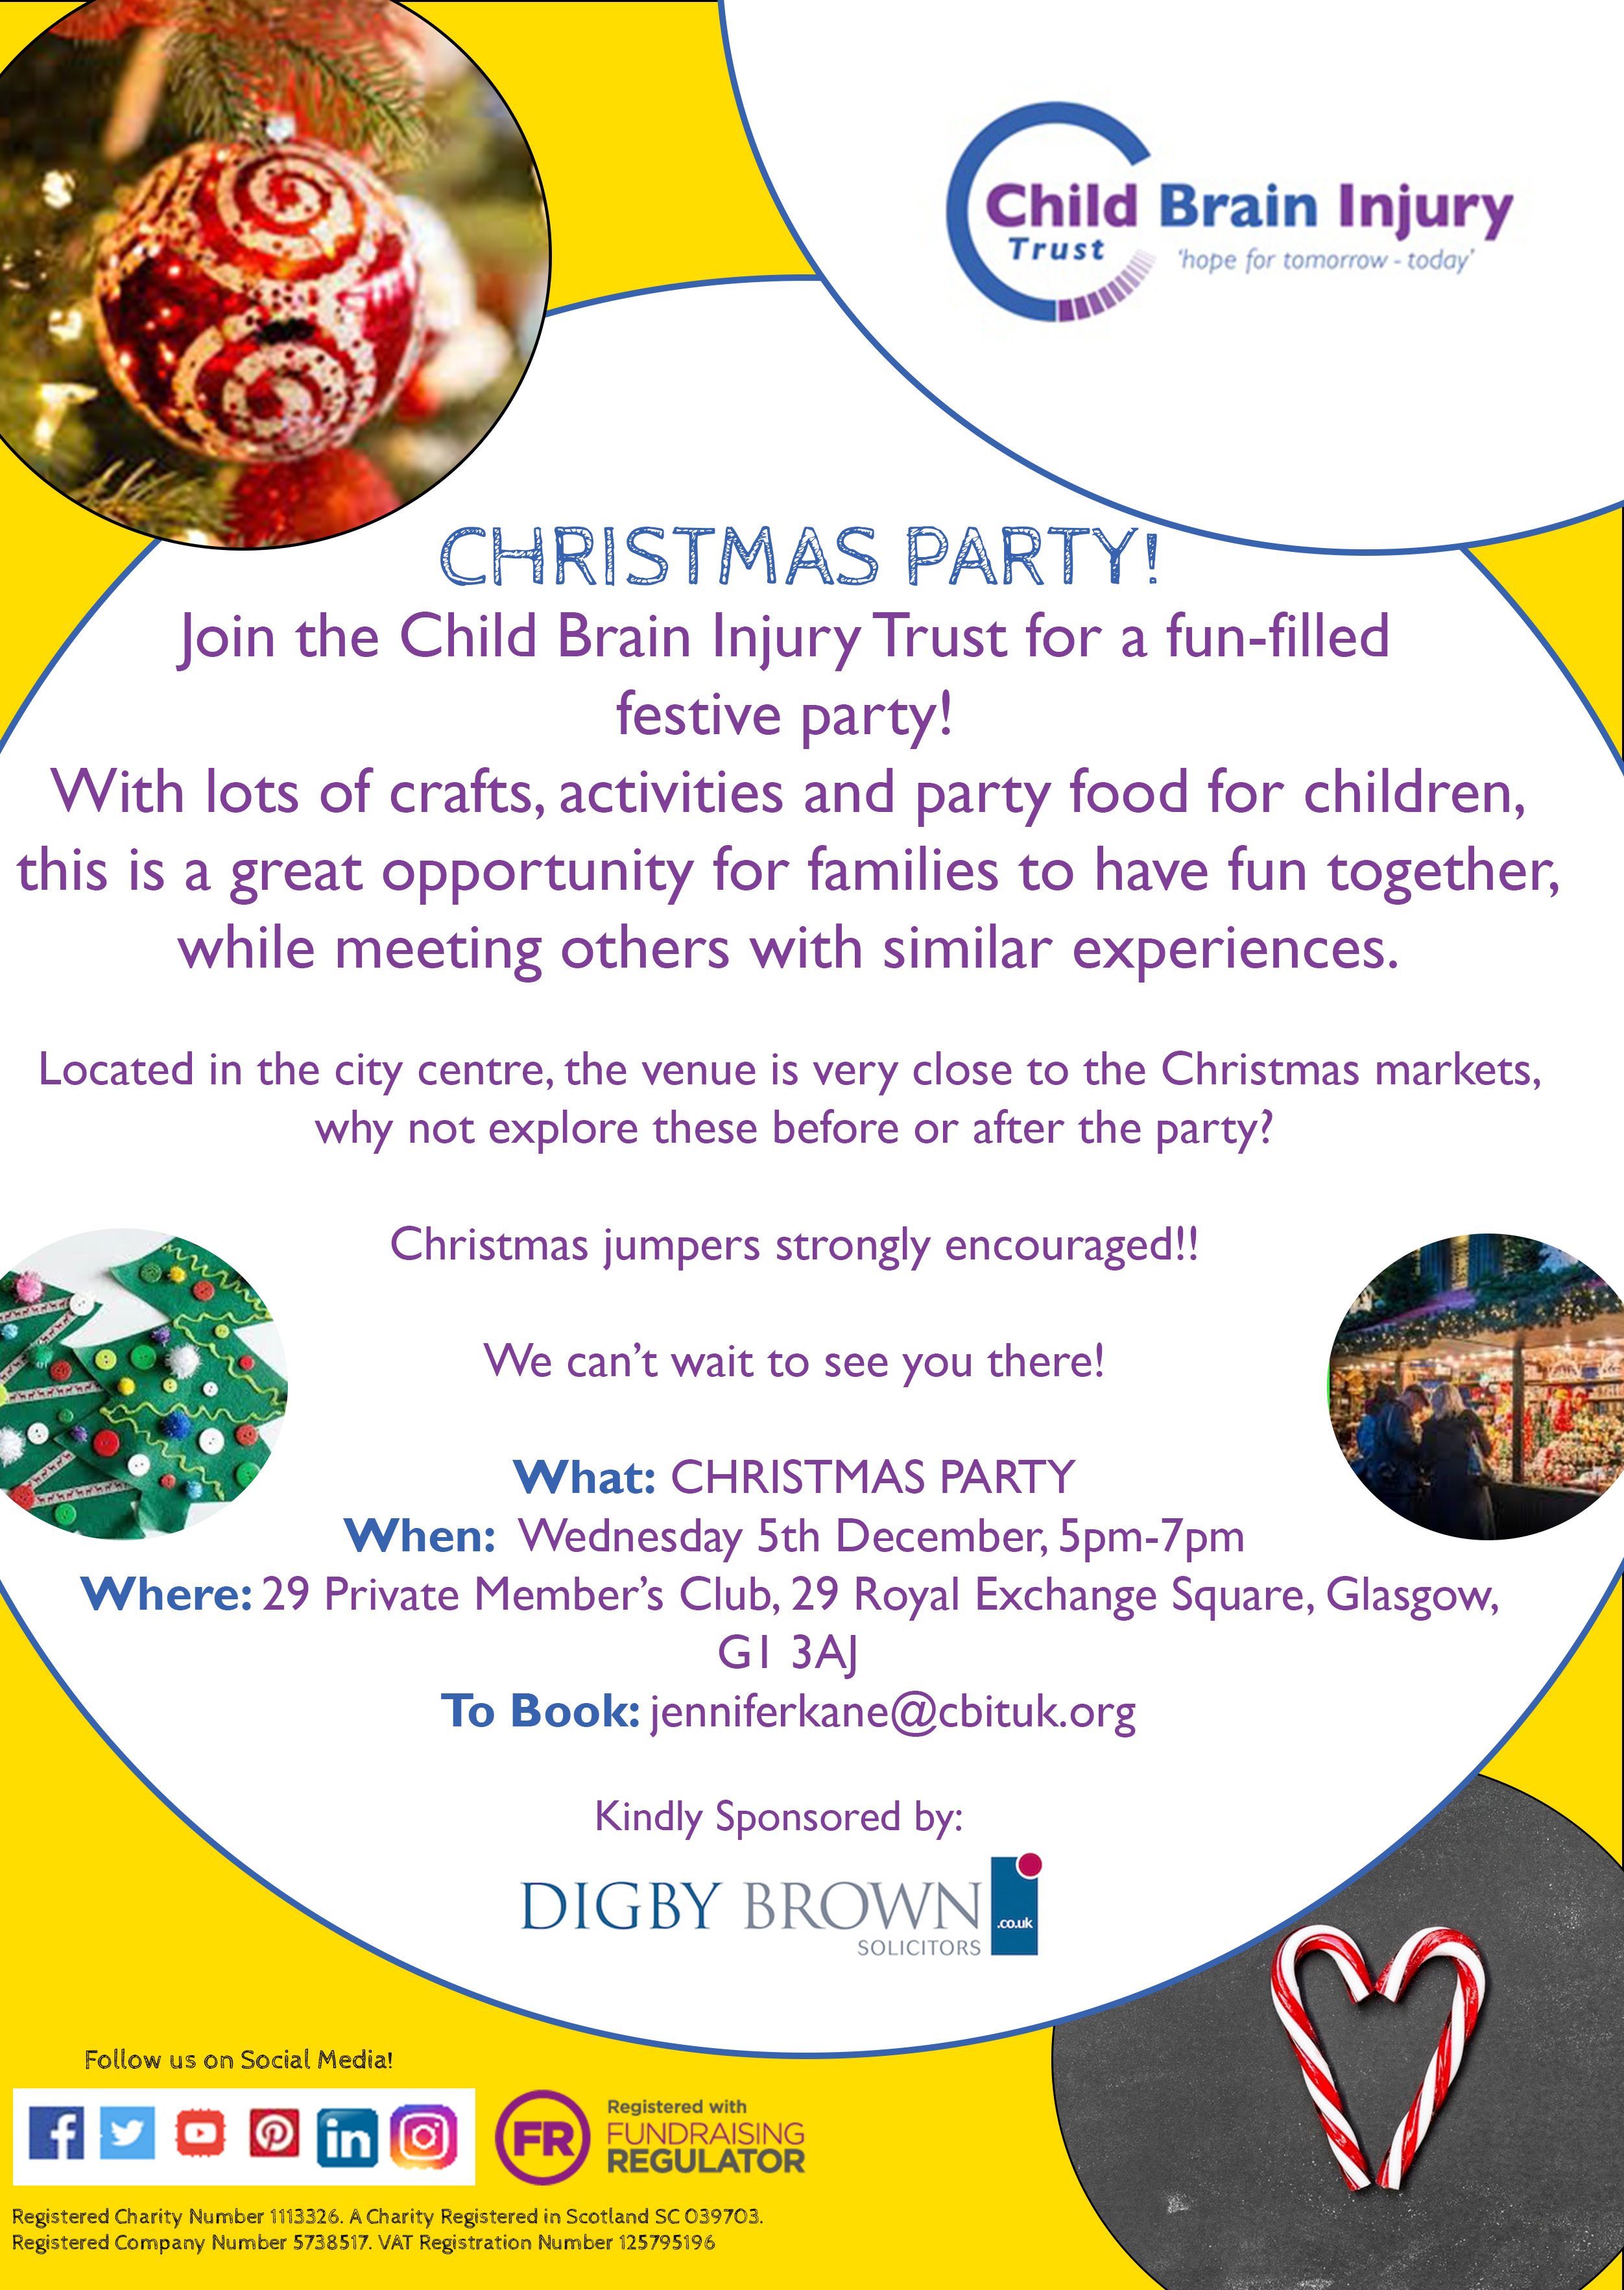 Christmas Party! - Child Brain Injury Trust